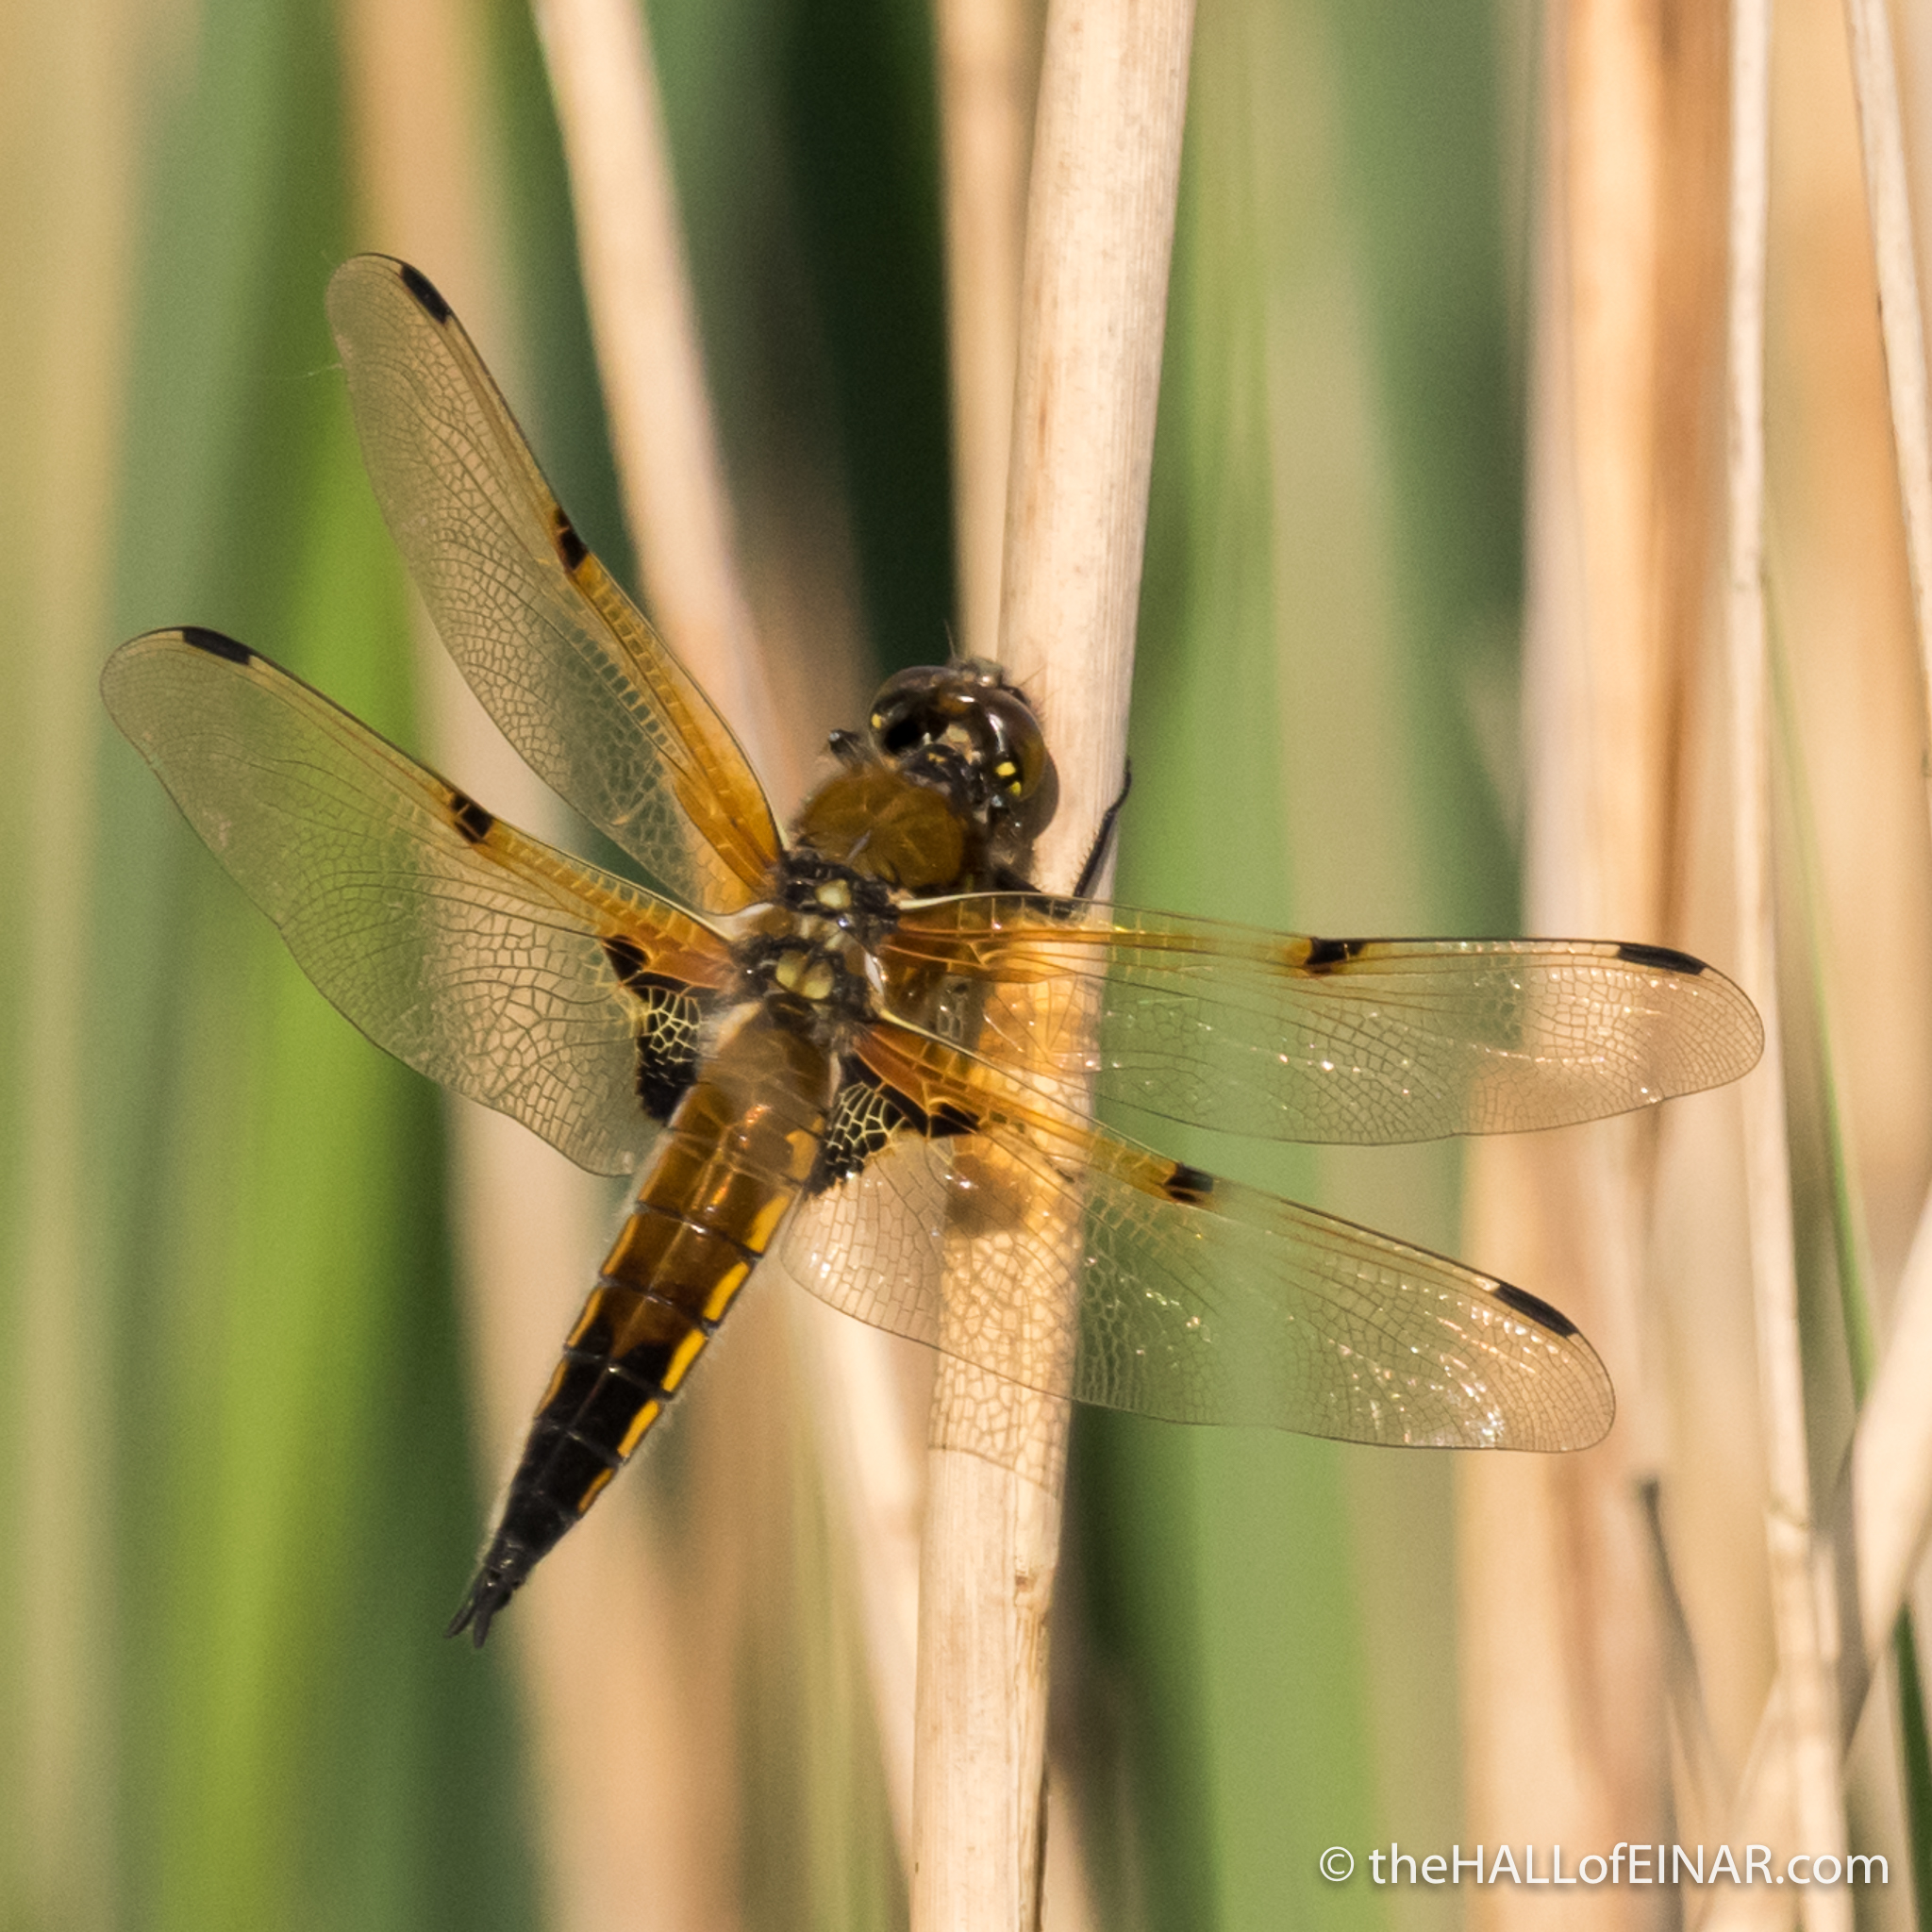 Four Spotted Chaser - The Hall of Einar - photograph (c) David Bailey (not the)